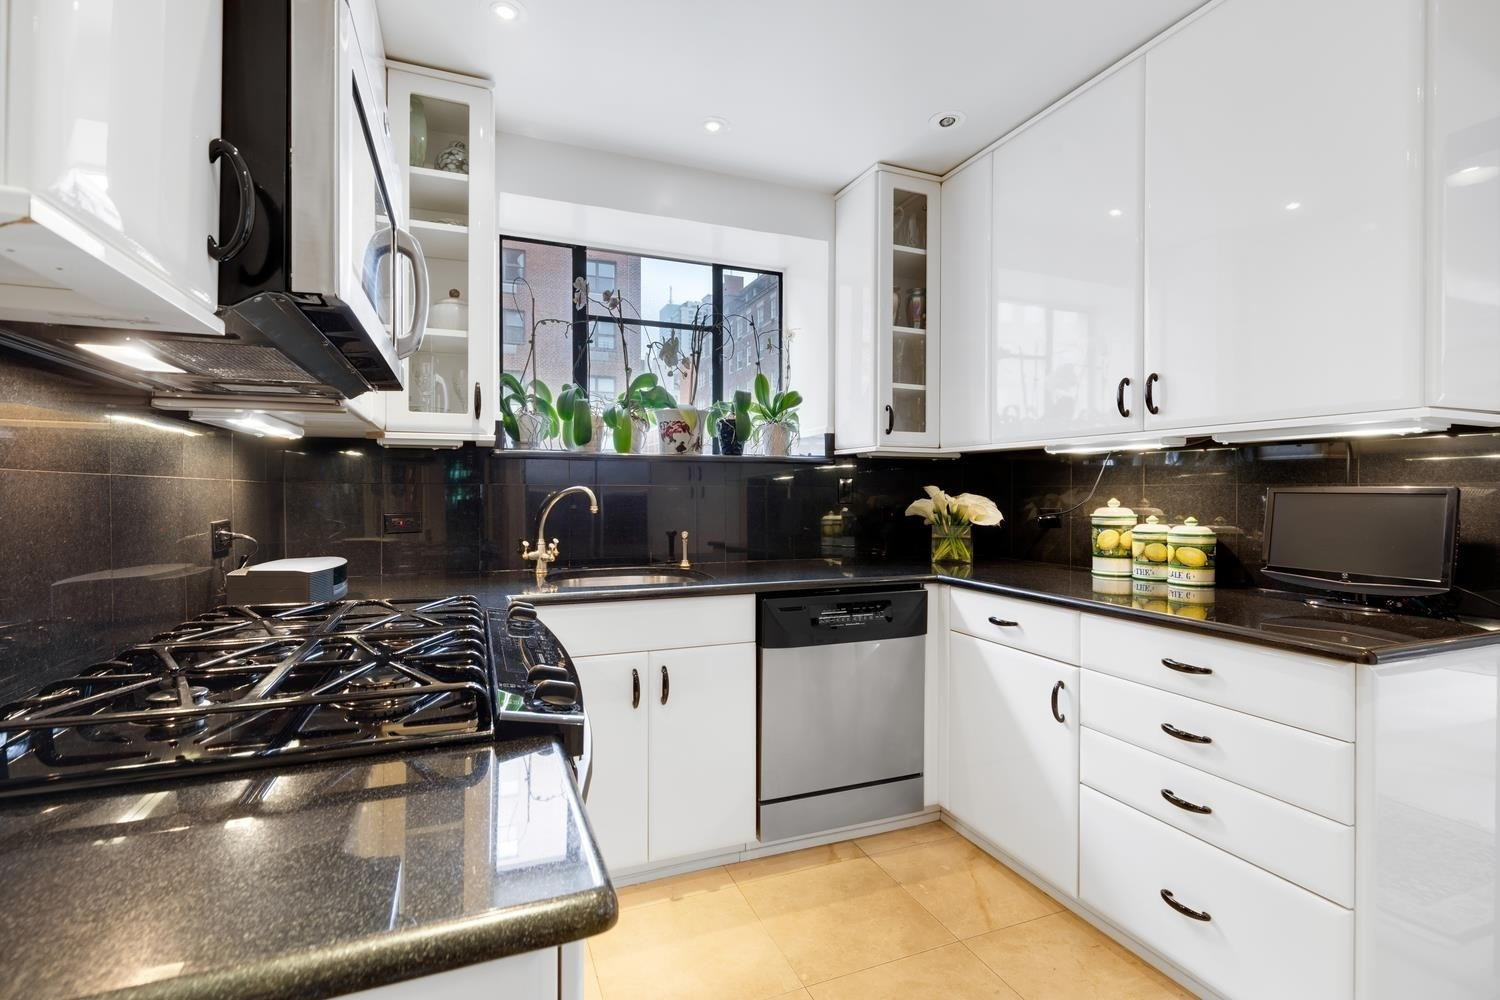 6. Co-op Properties for Sale at Cannon Point North, 25 SUTTON PL S, 11B Sutton Place, New York, NY 10022